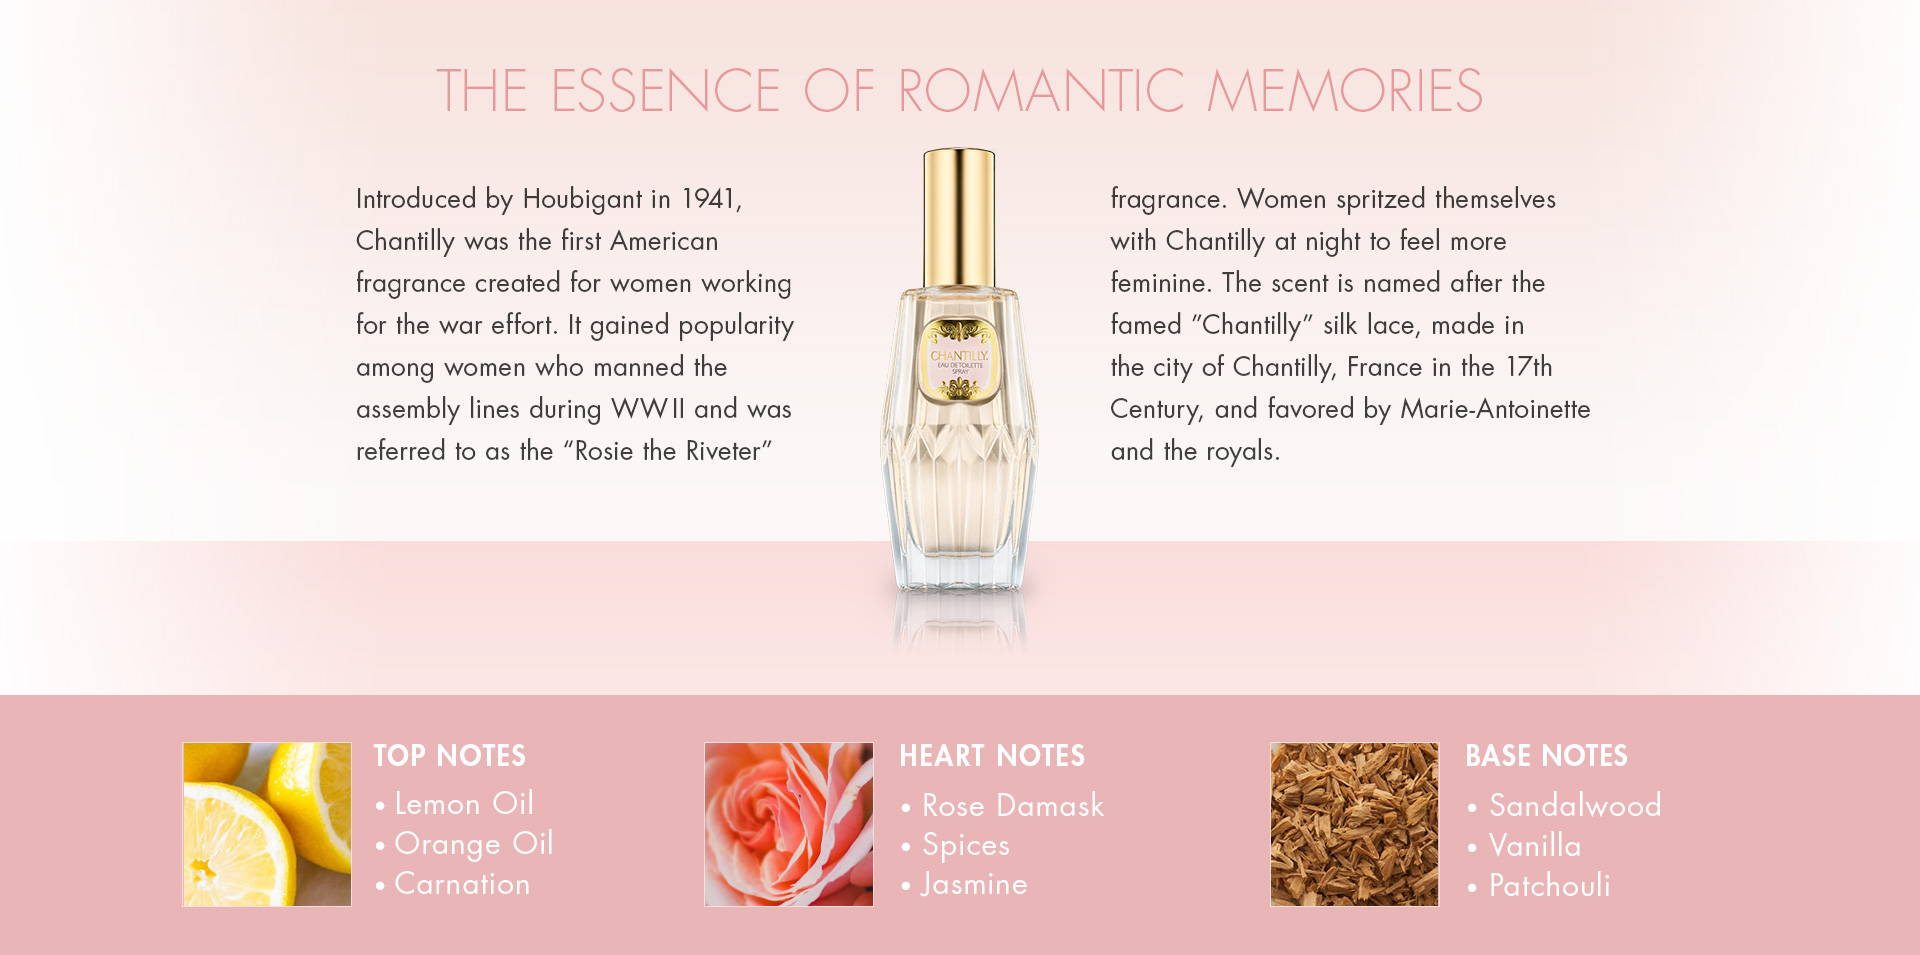 "The Essence of Romantic Memories. Introduced by Houbigant in 1941, Chantilly was the first American fragrance created for women working for the war effort. It gained popularity among women who manned the assembly lines during WWII and was referred to as the ""Rosie the Riveter"" fragrance. Women spritzed themselves with Chantilly at night to feel more feminine. The scent is named after the famed ""Chantilly"" silk lace, made in the city of Chantilly, France in the 17th Century, and favored by Marie-Antoinette and the royals. TOP NOTES• Lemon Oil• Orange Oil• Carnation. HEART NOTES • Rose Damask• Spices• Jasmine. BASE NOTES • Sandalwood• Vanilla• Patchouli."